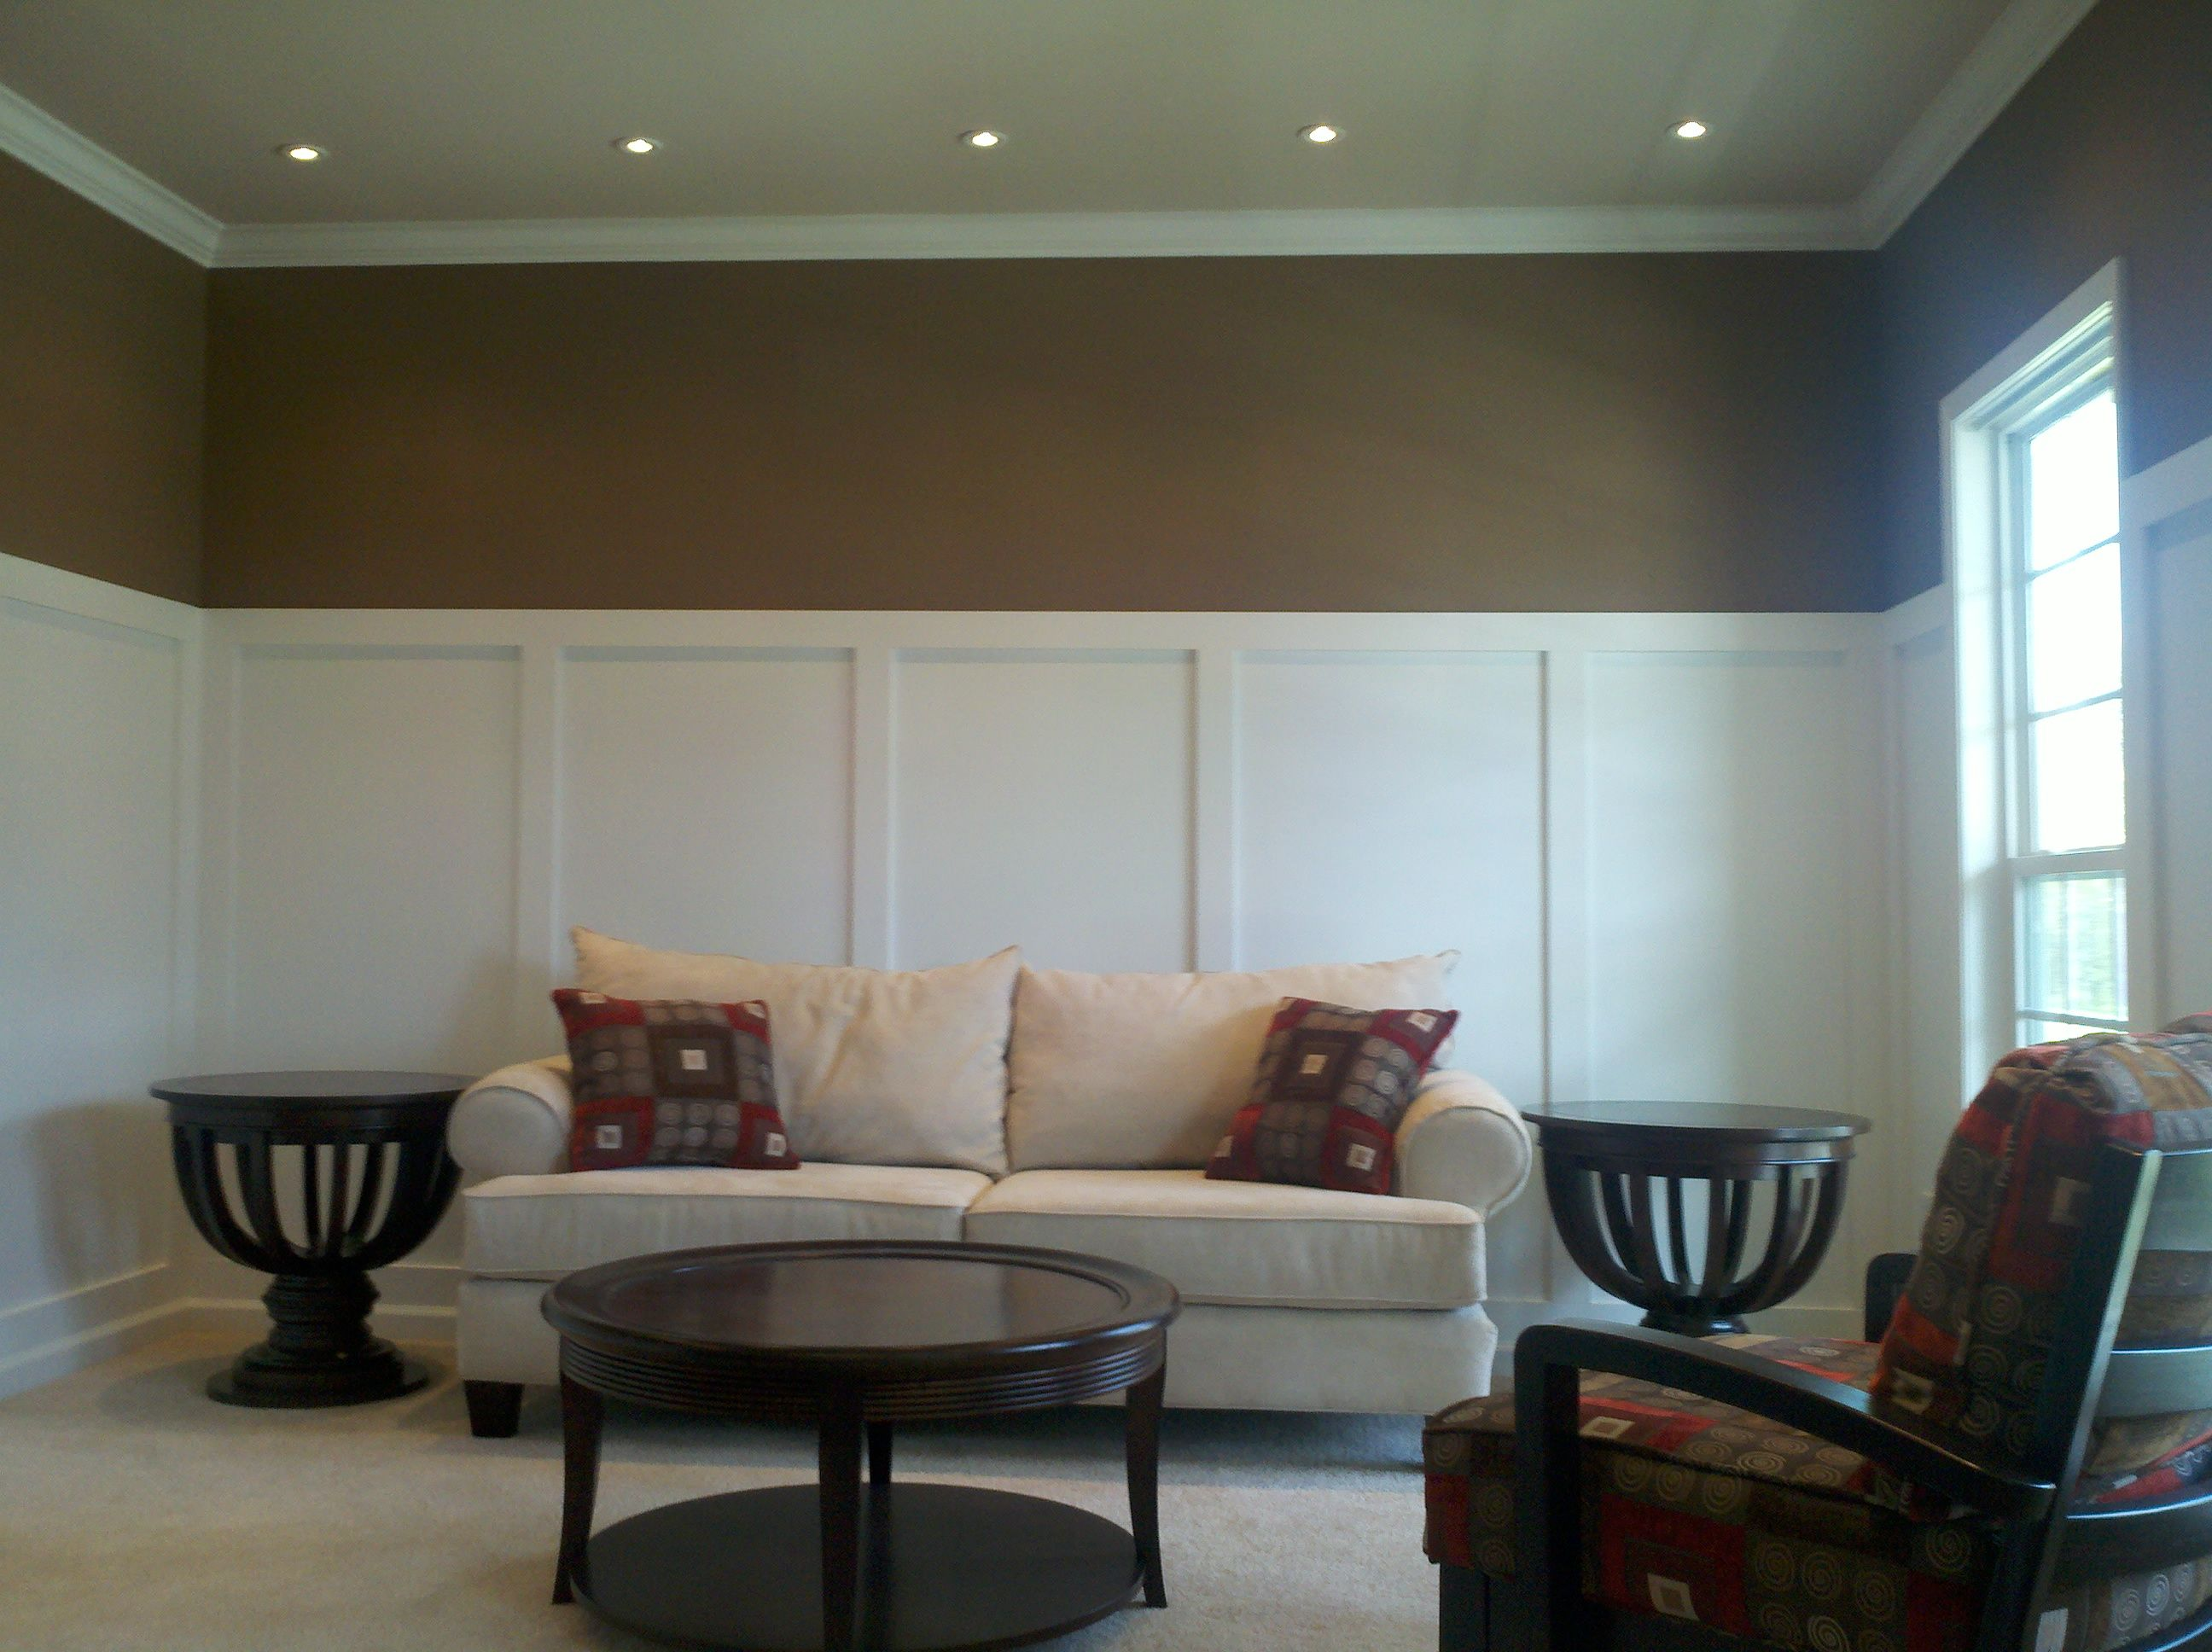 best best recessed lighting for living room recessed halogen lights and board and batten paneling add